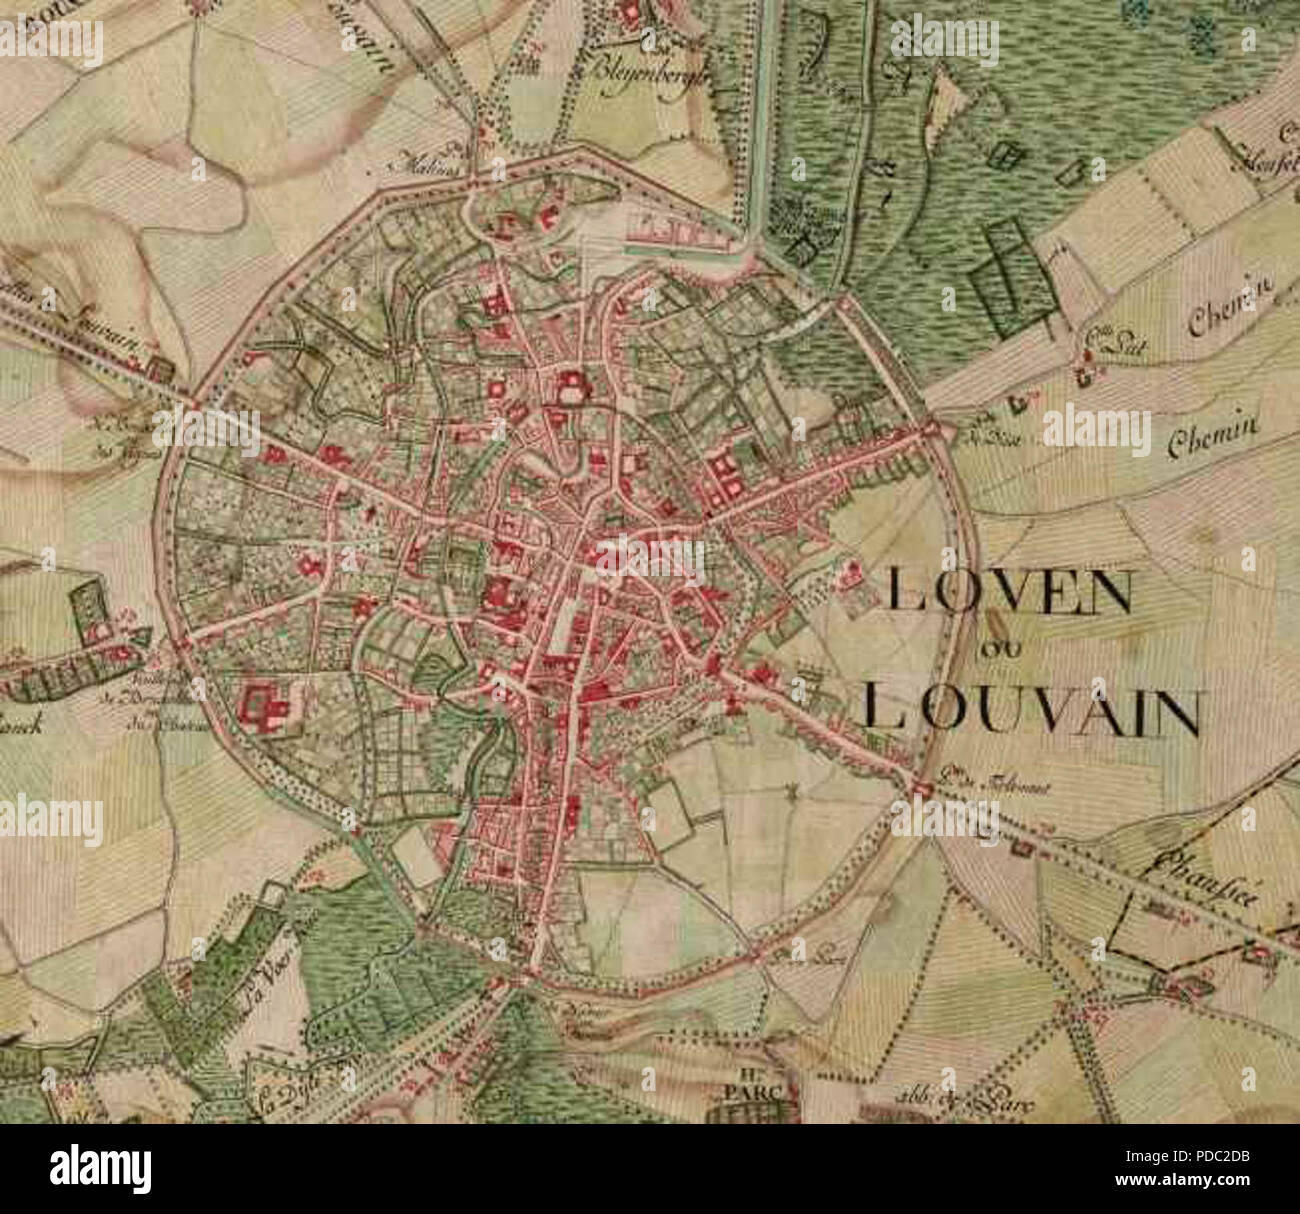 Ferrari World Map.Leuven On The Ferraris Map Around 1775 Stock Photo 214780311 Alamy